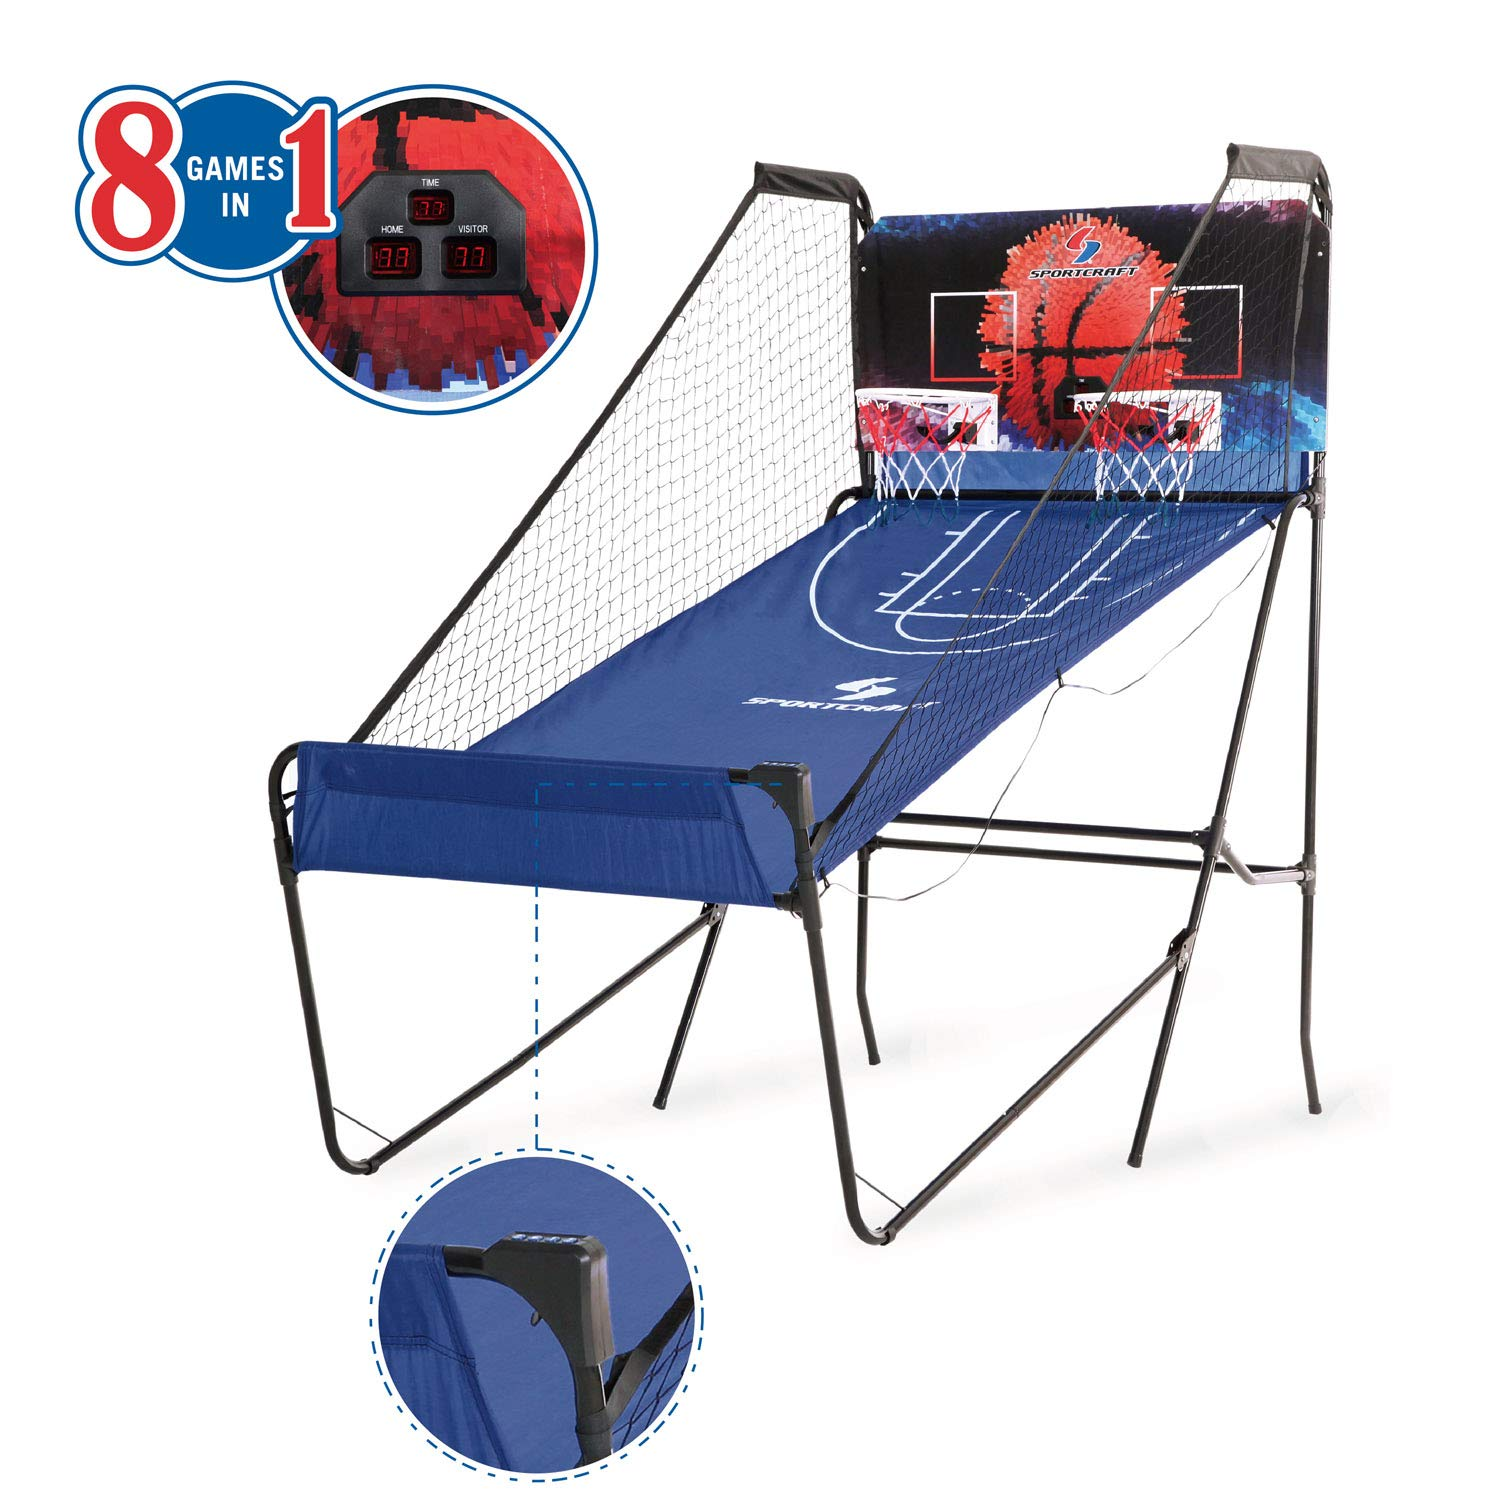 Sportcraft 10 Mins Setup/No Tools Required 2-Player Basketball Arcade Game w/ 8 Game Options TRI GREAT USA SODBN-1054